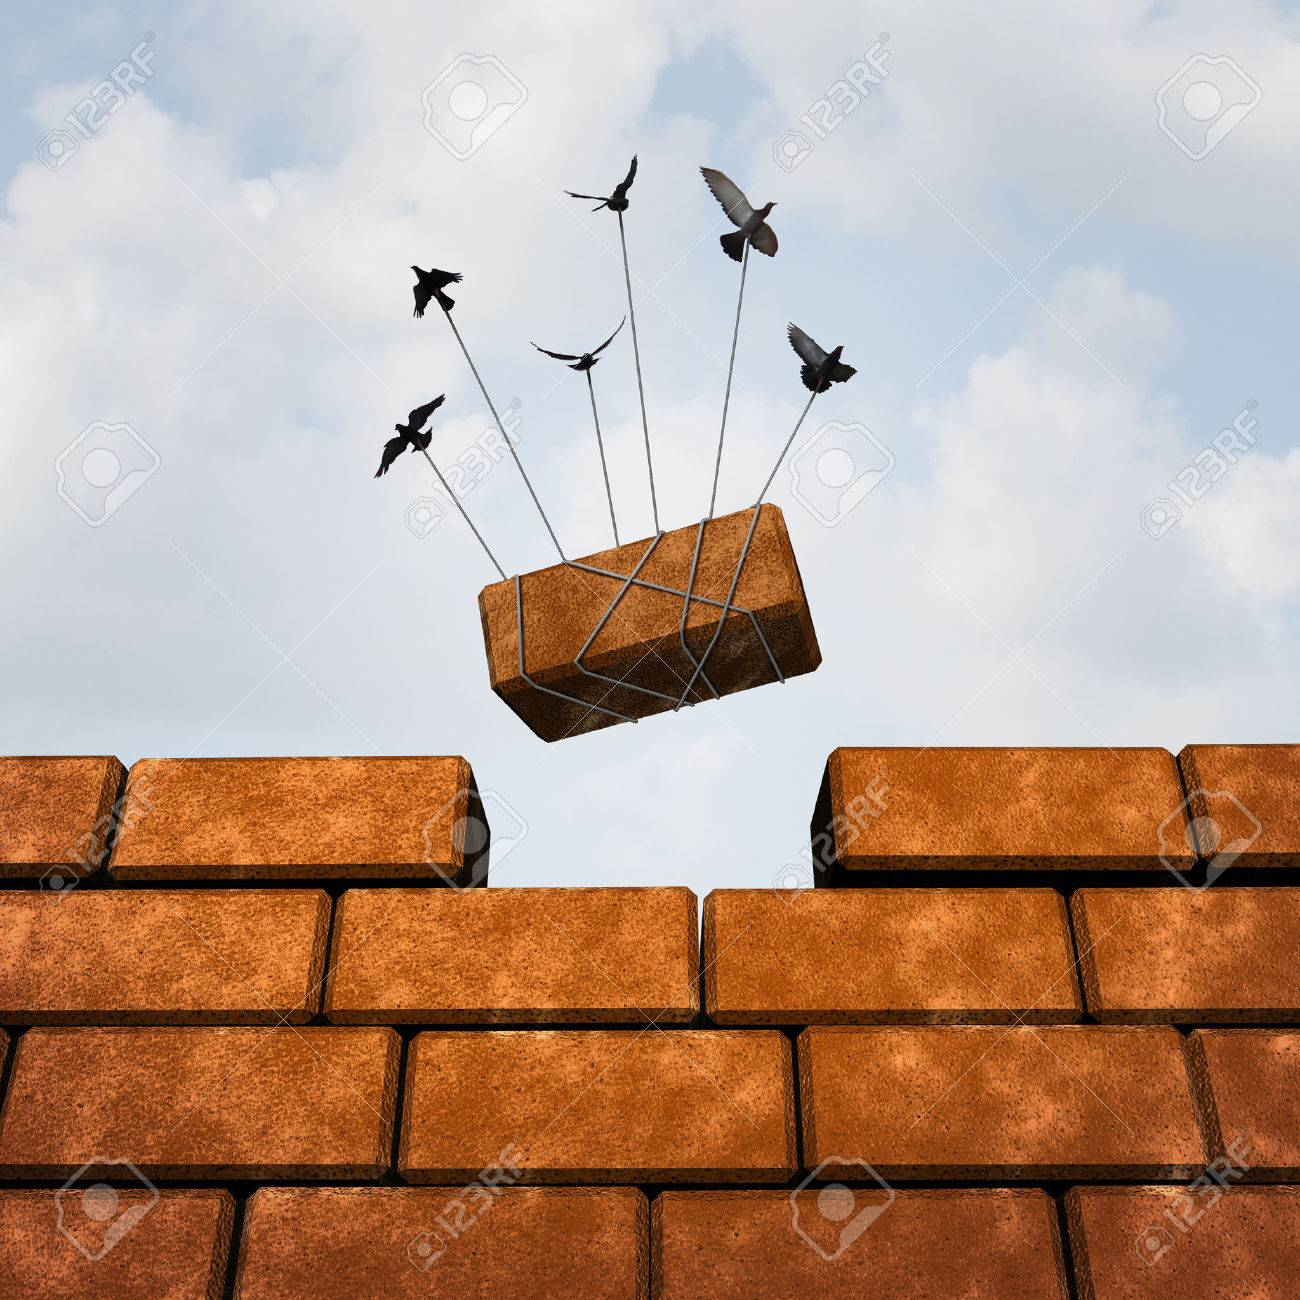 build a wall business concept as a group of birds placing a brick to complete a build wall